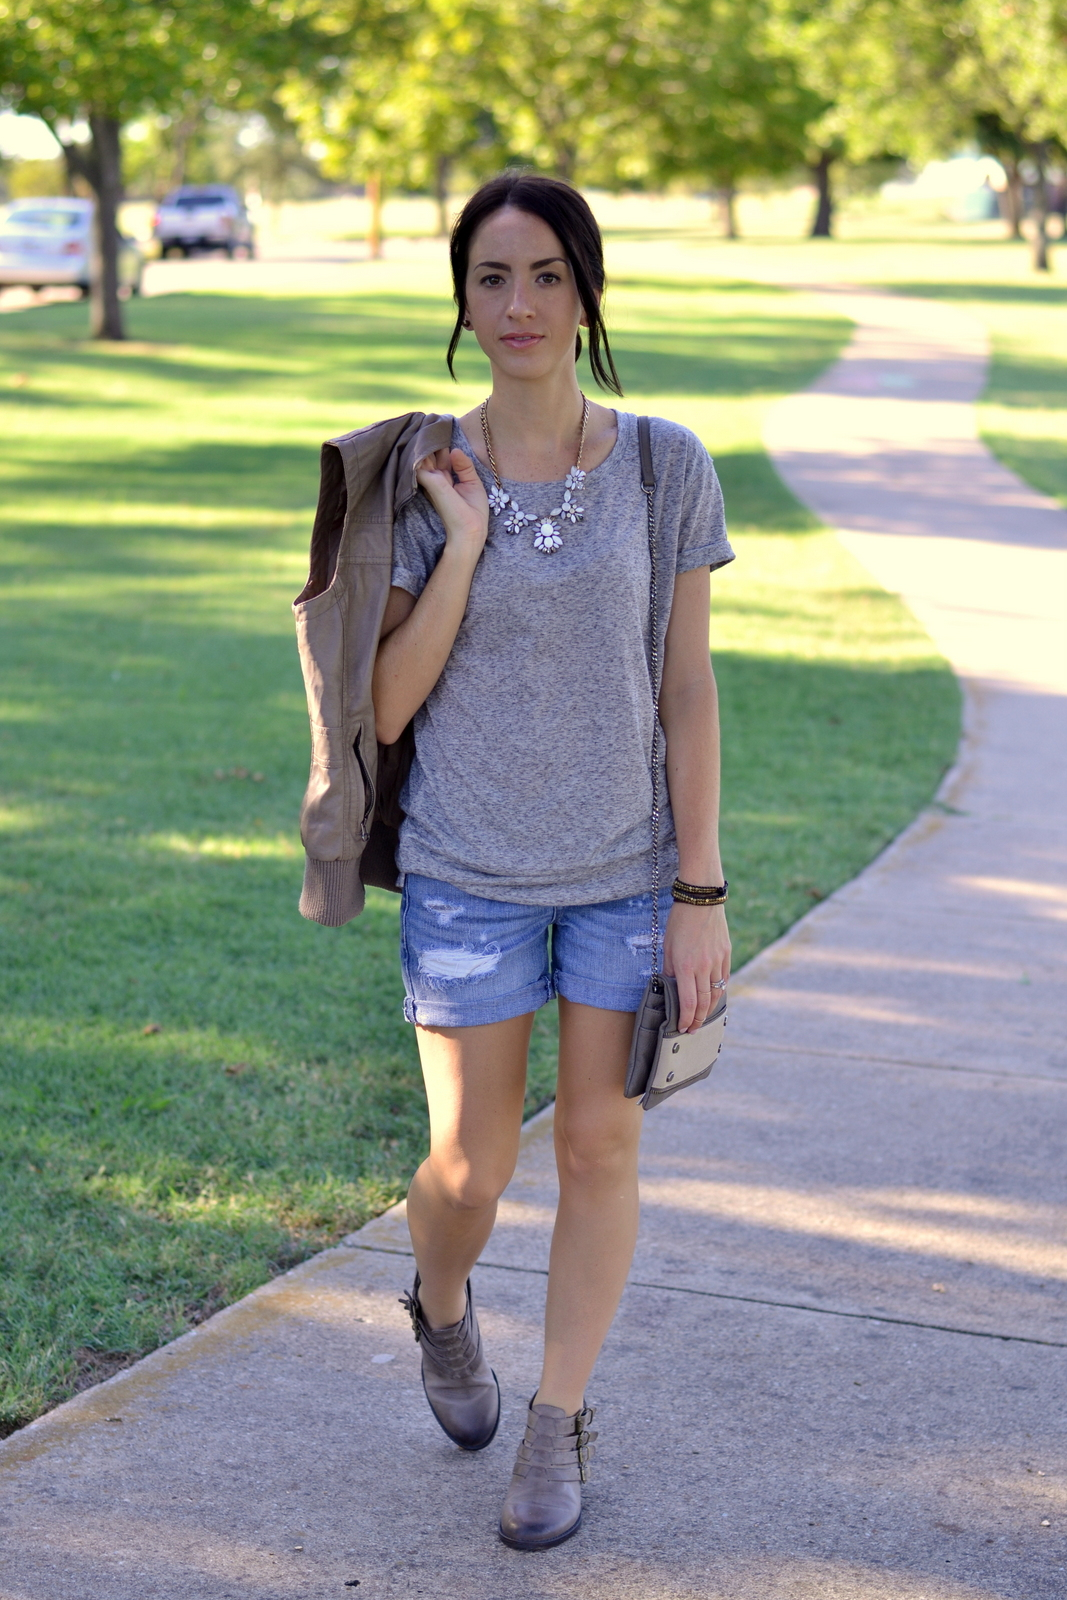 Boyfriend Shorts, Ankle Boots, Gray Tee